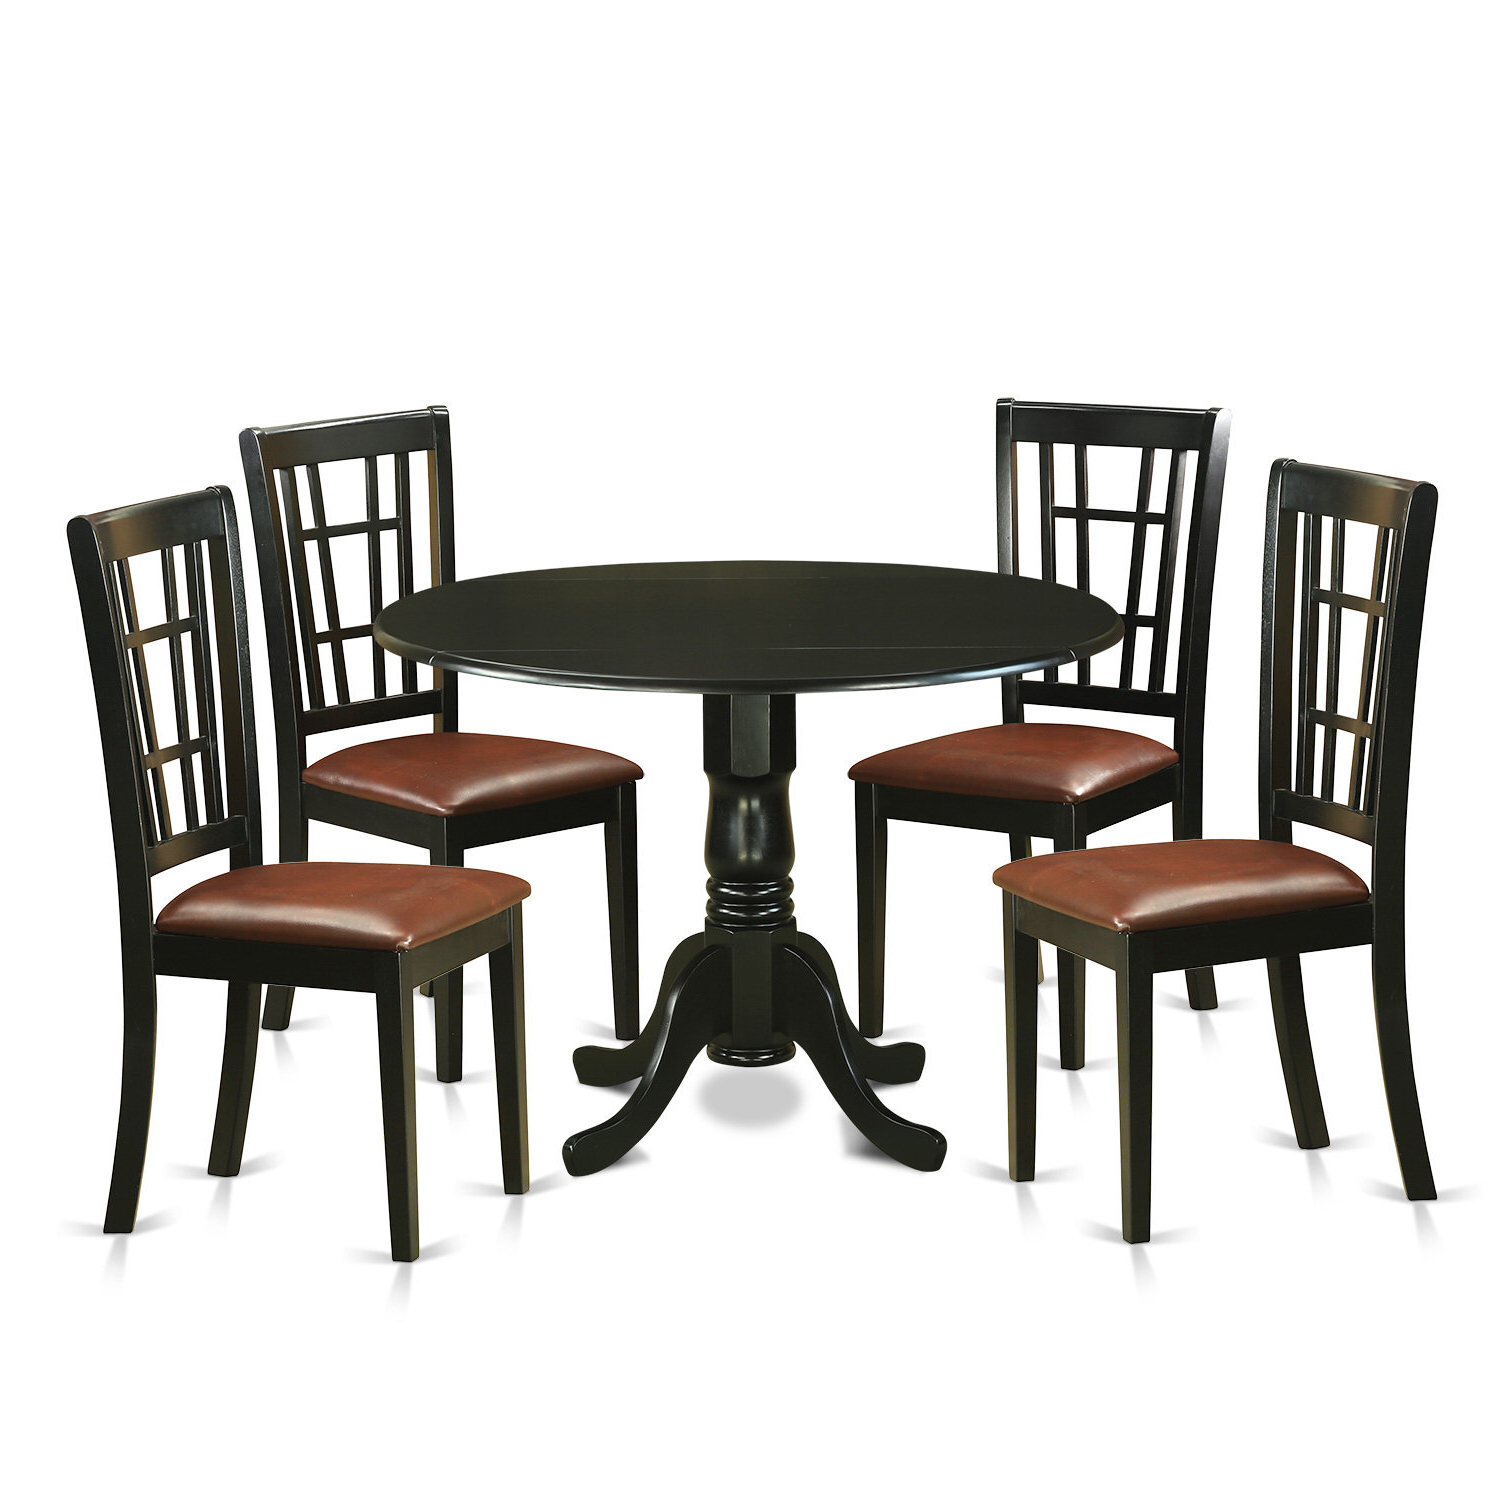 Charlton Home Gloucester 5 Piece Extendable Dining Set Inside Current Boothby Drop Leaf Rubberwood Solid Wood Pedestal Dining Tables (View 17 of 20)